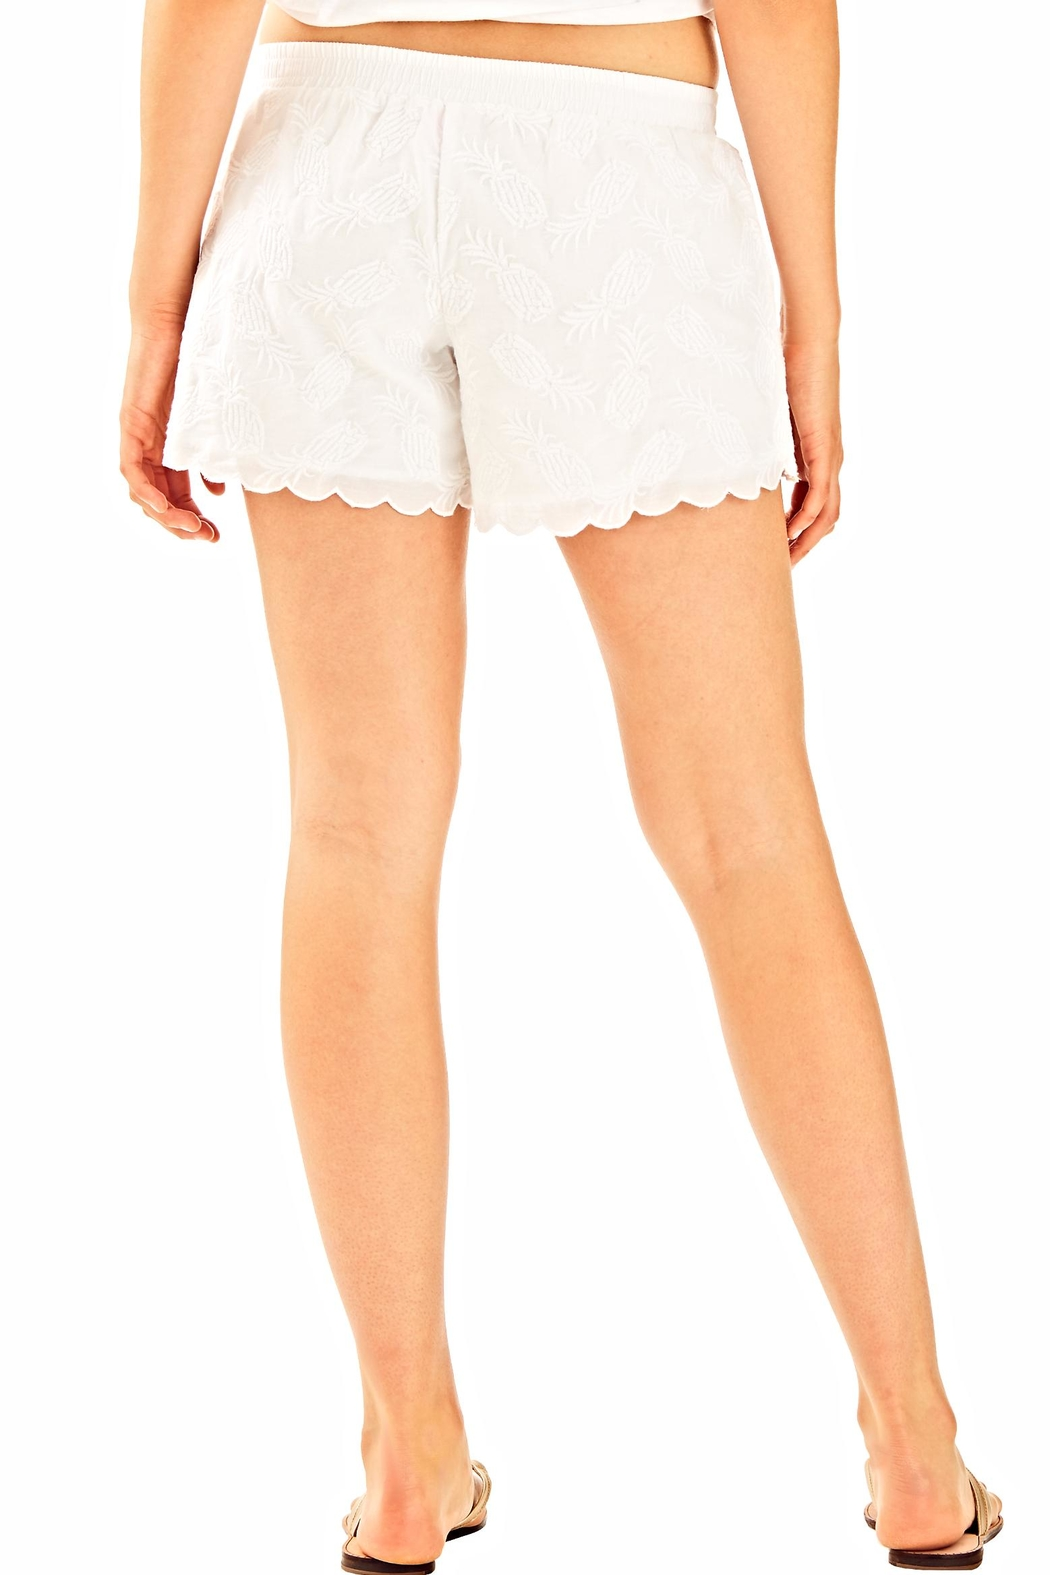 Lilly Pulitzer White Bay breeze short - Front Full Image